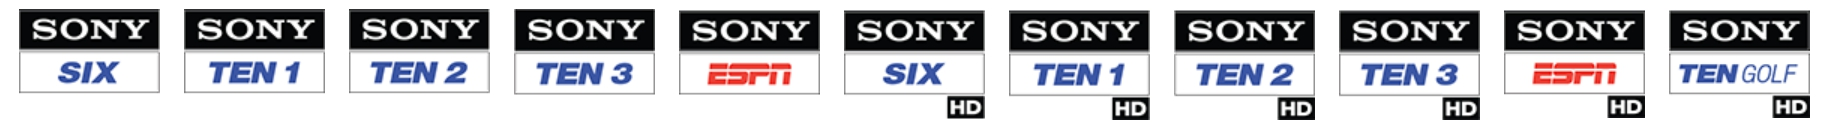 Sony TEN Sports Network